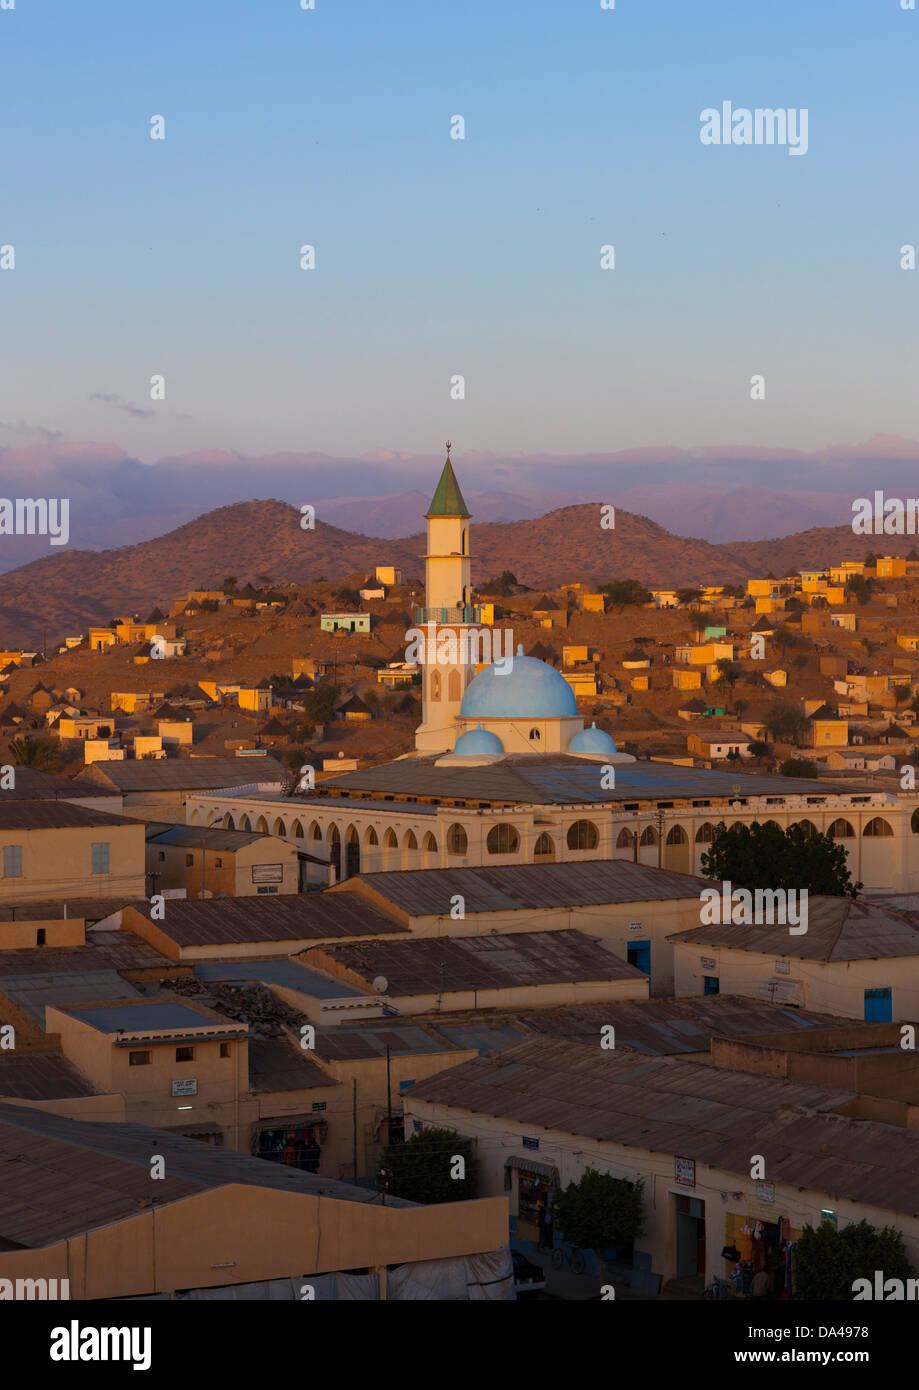 Overvoew Of The Town, Keren, Eritrea - Stock Image